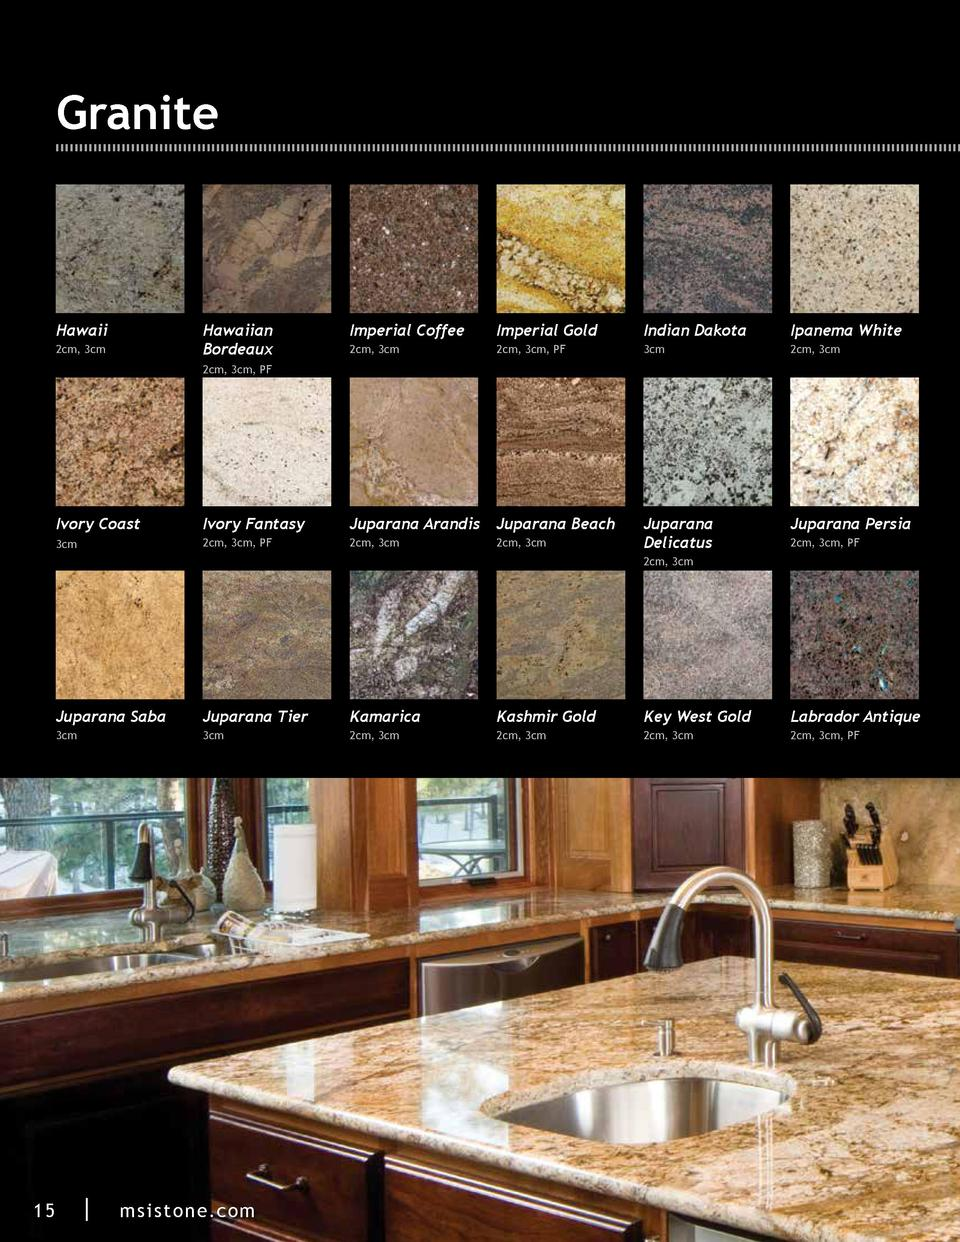 Granite  Hawaii  Hawaiian Bordeaux  2cm, 3cm  Imperial Coffee  Imperial Gold  Indian Dakota  Ipanema White  2cm, 3cm  2cm,...